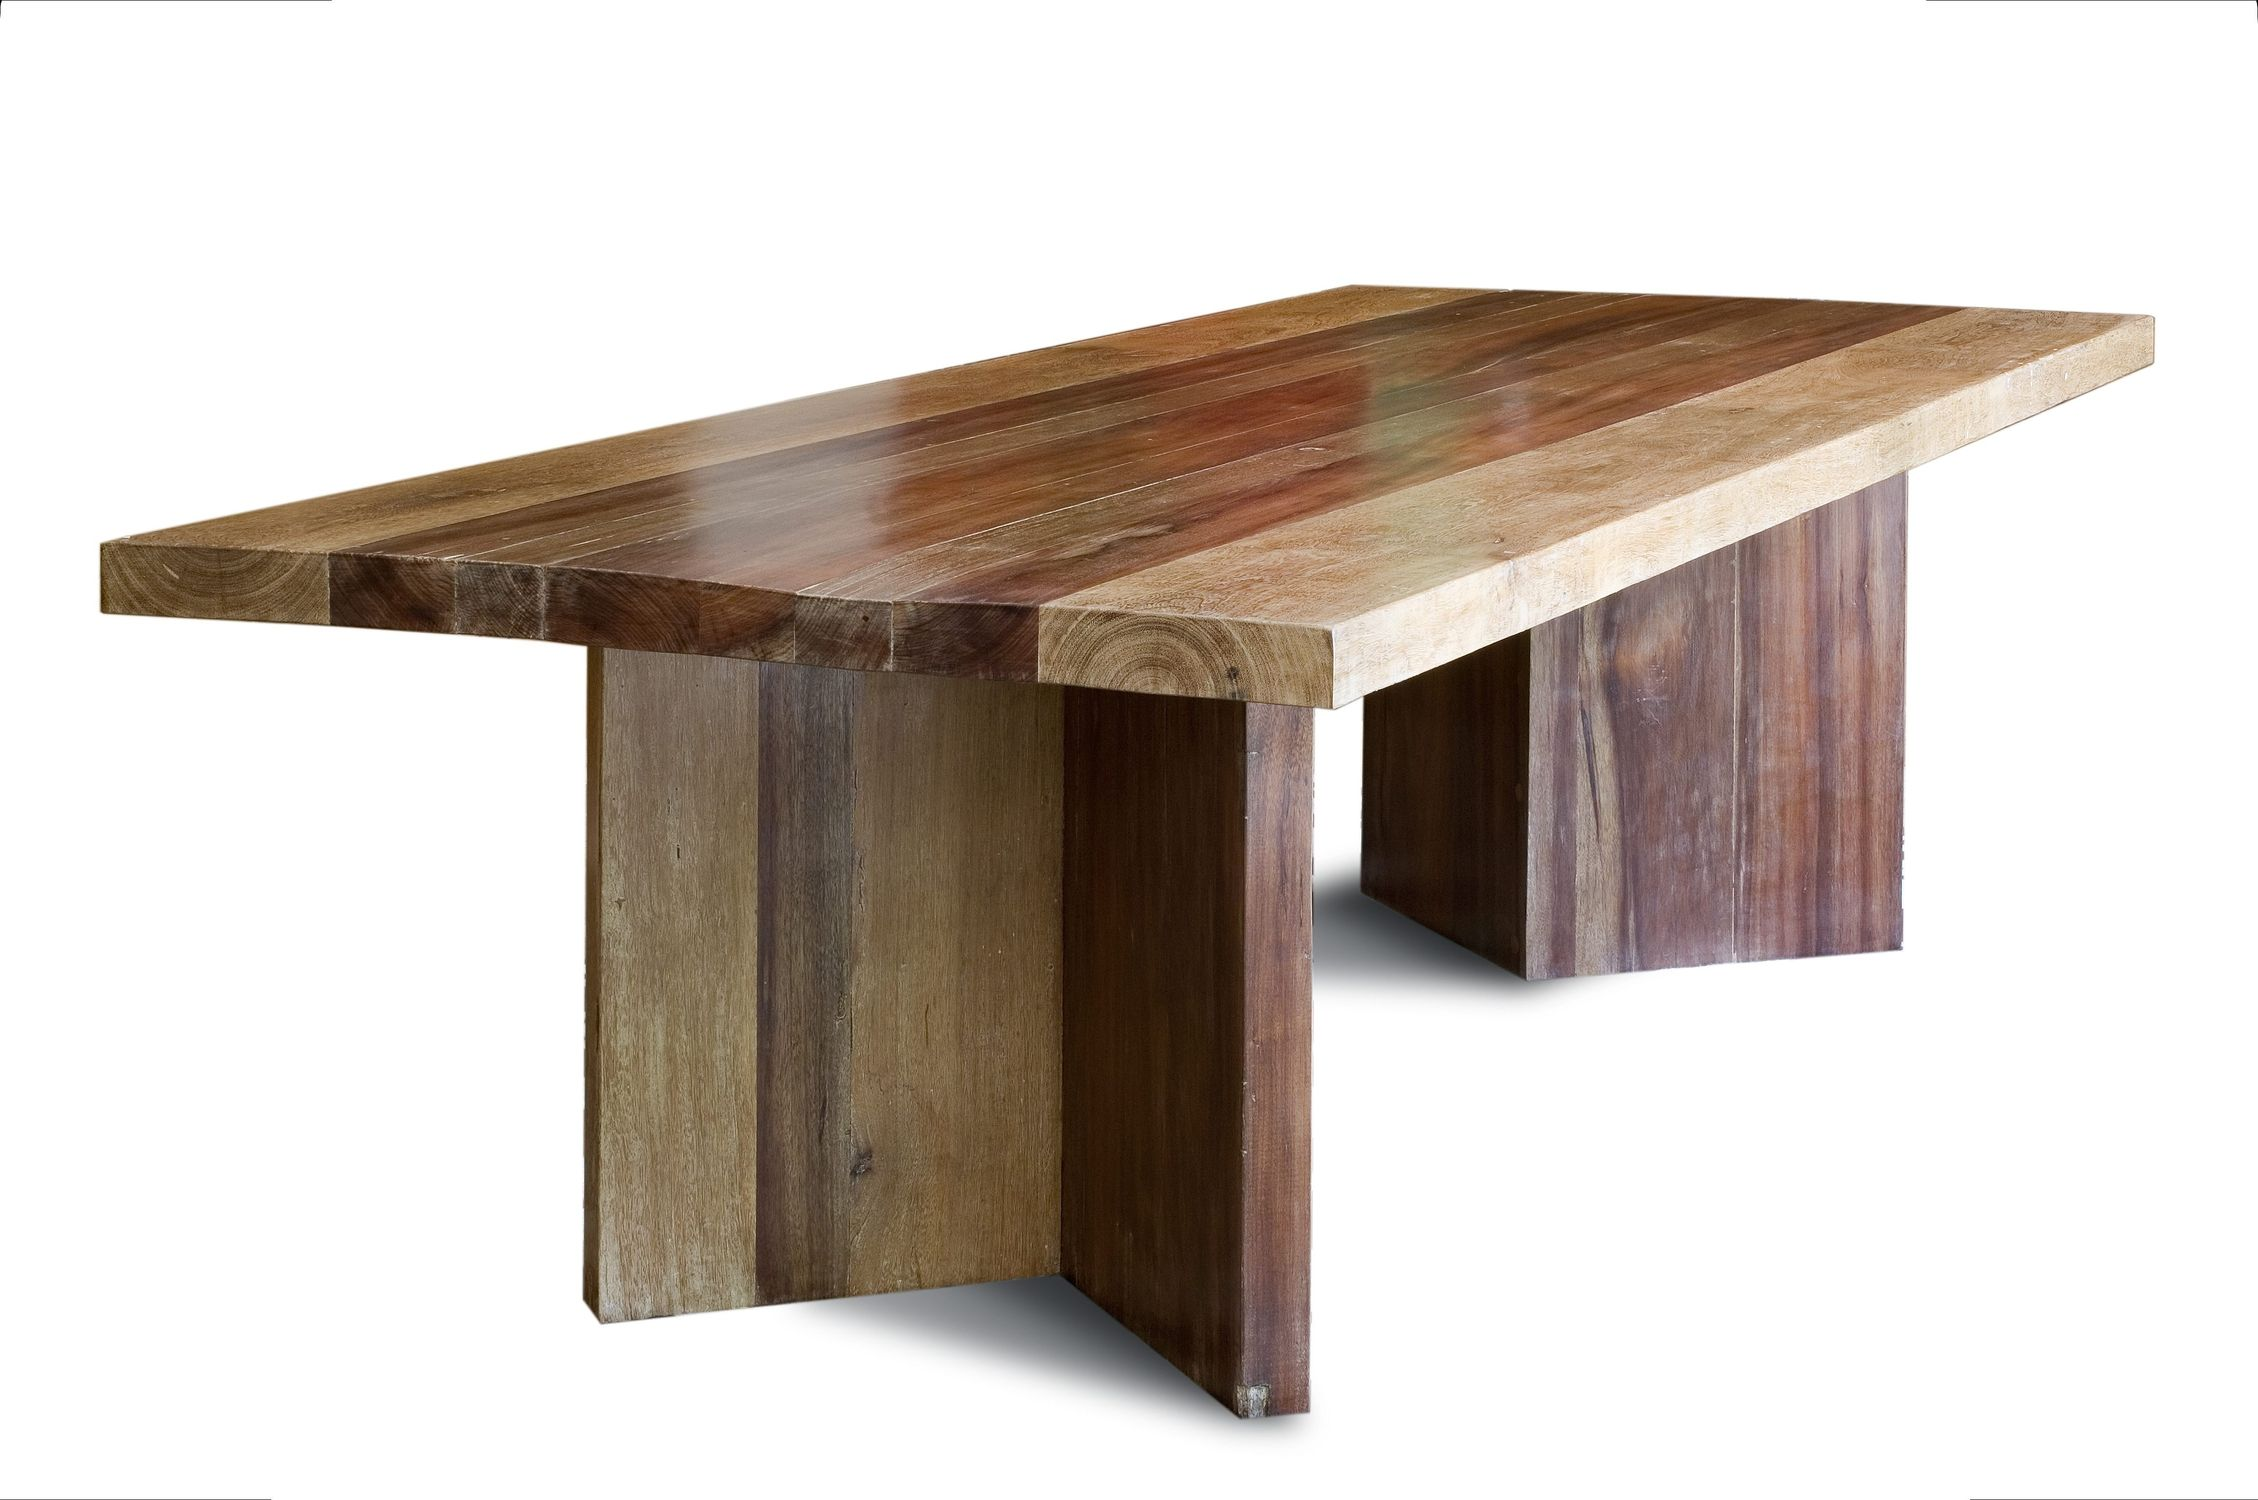 Contemporary Table / Wooden / Rectangular / In Reclaimed Material   GOURMET  V